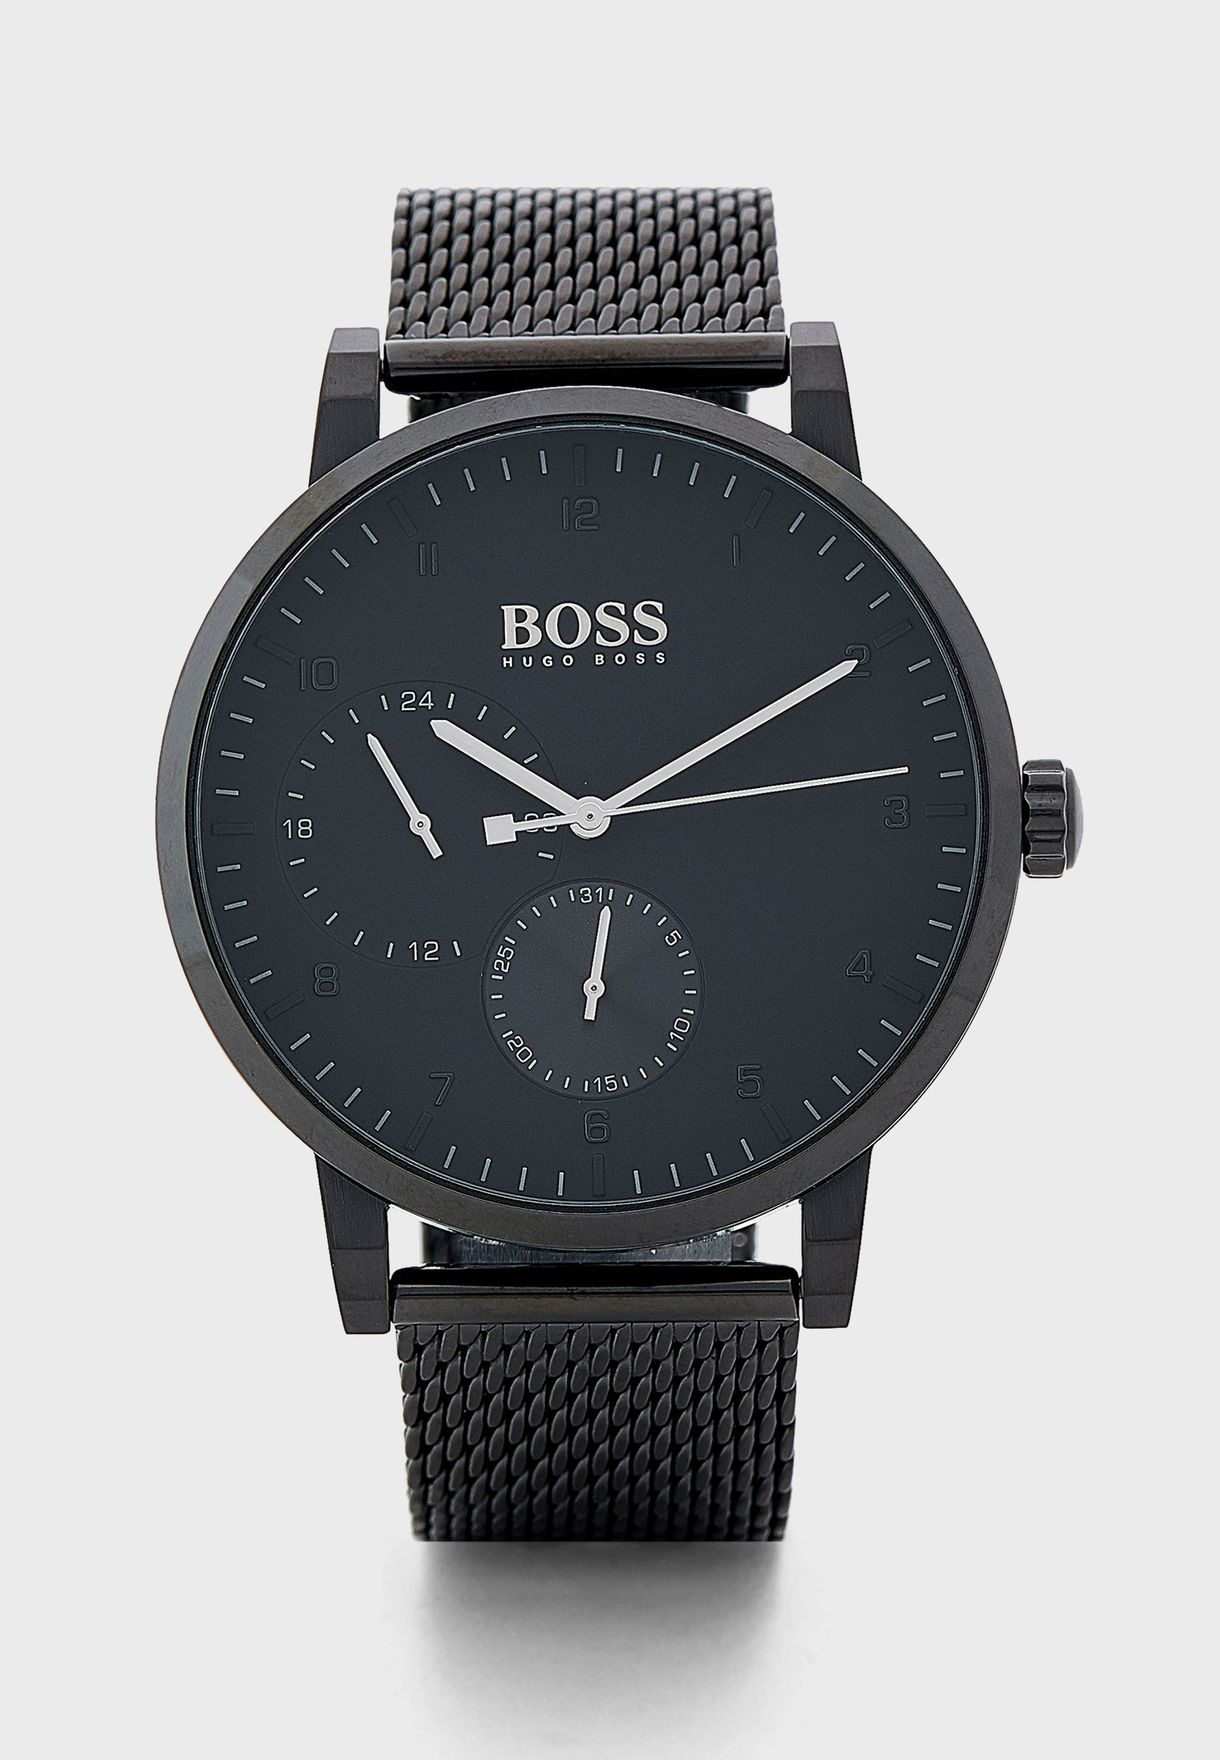 Bezel Allow Element Analog Watch